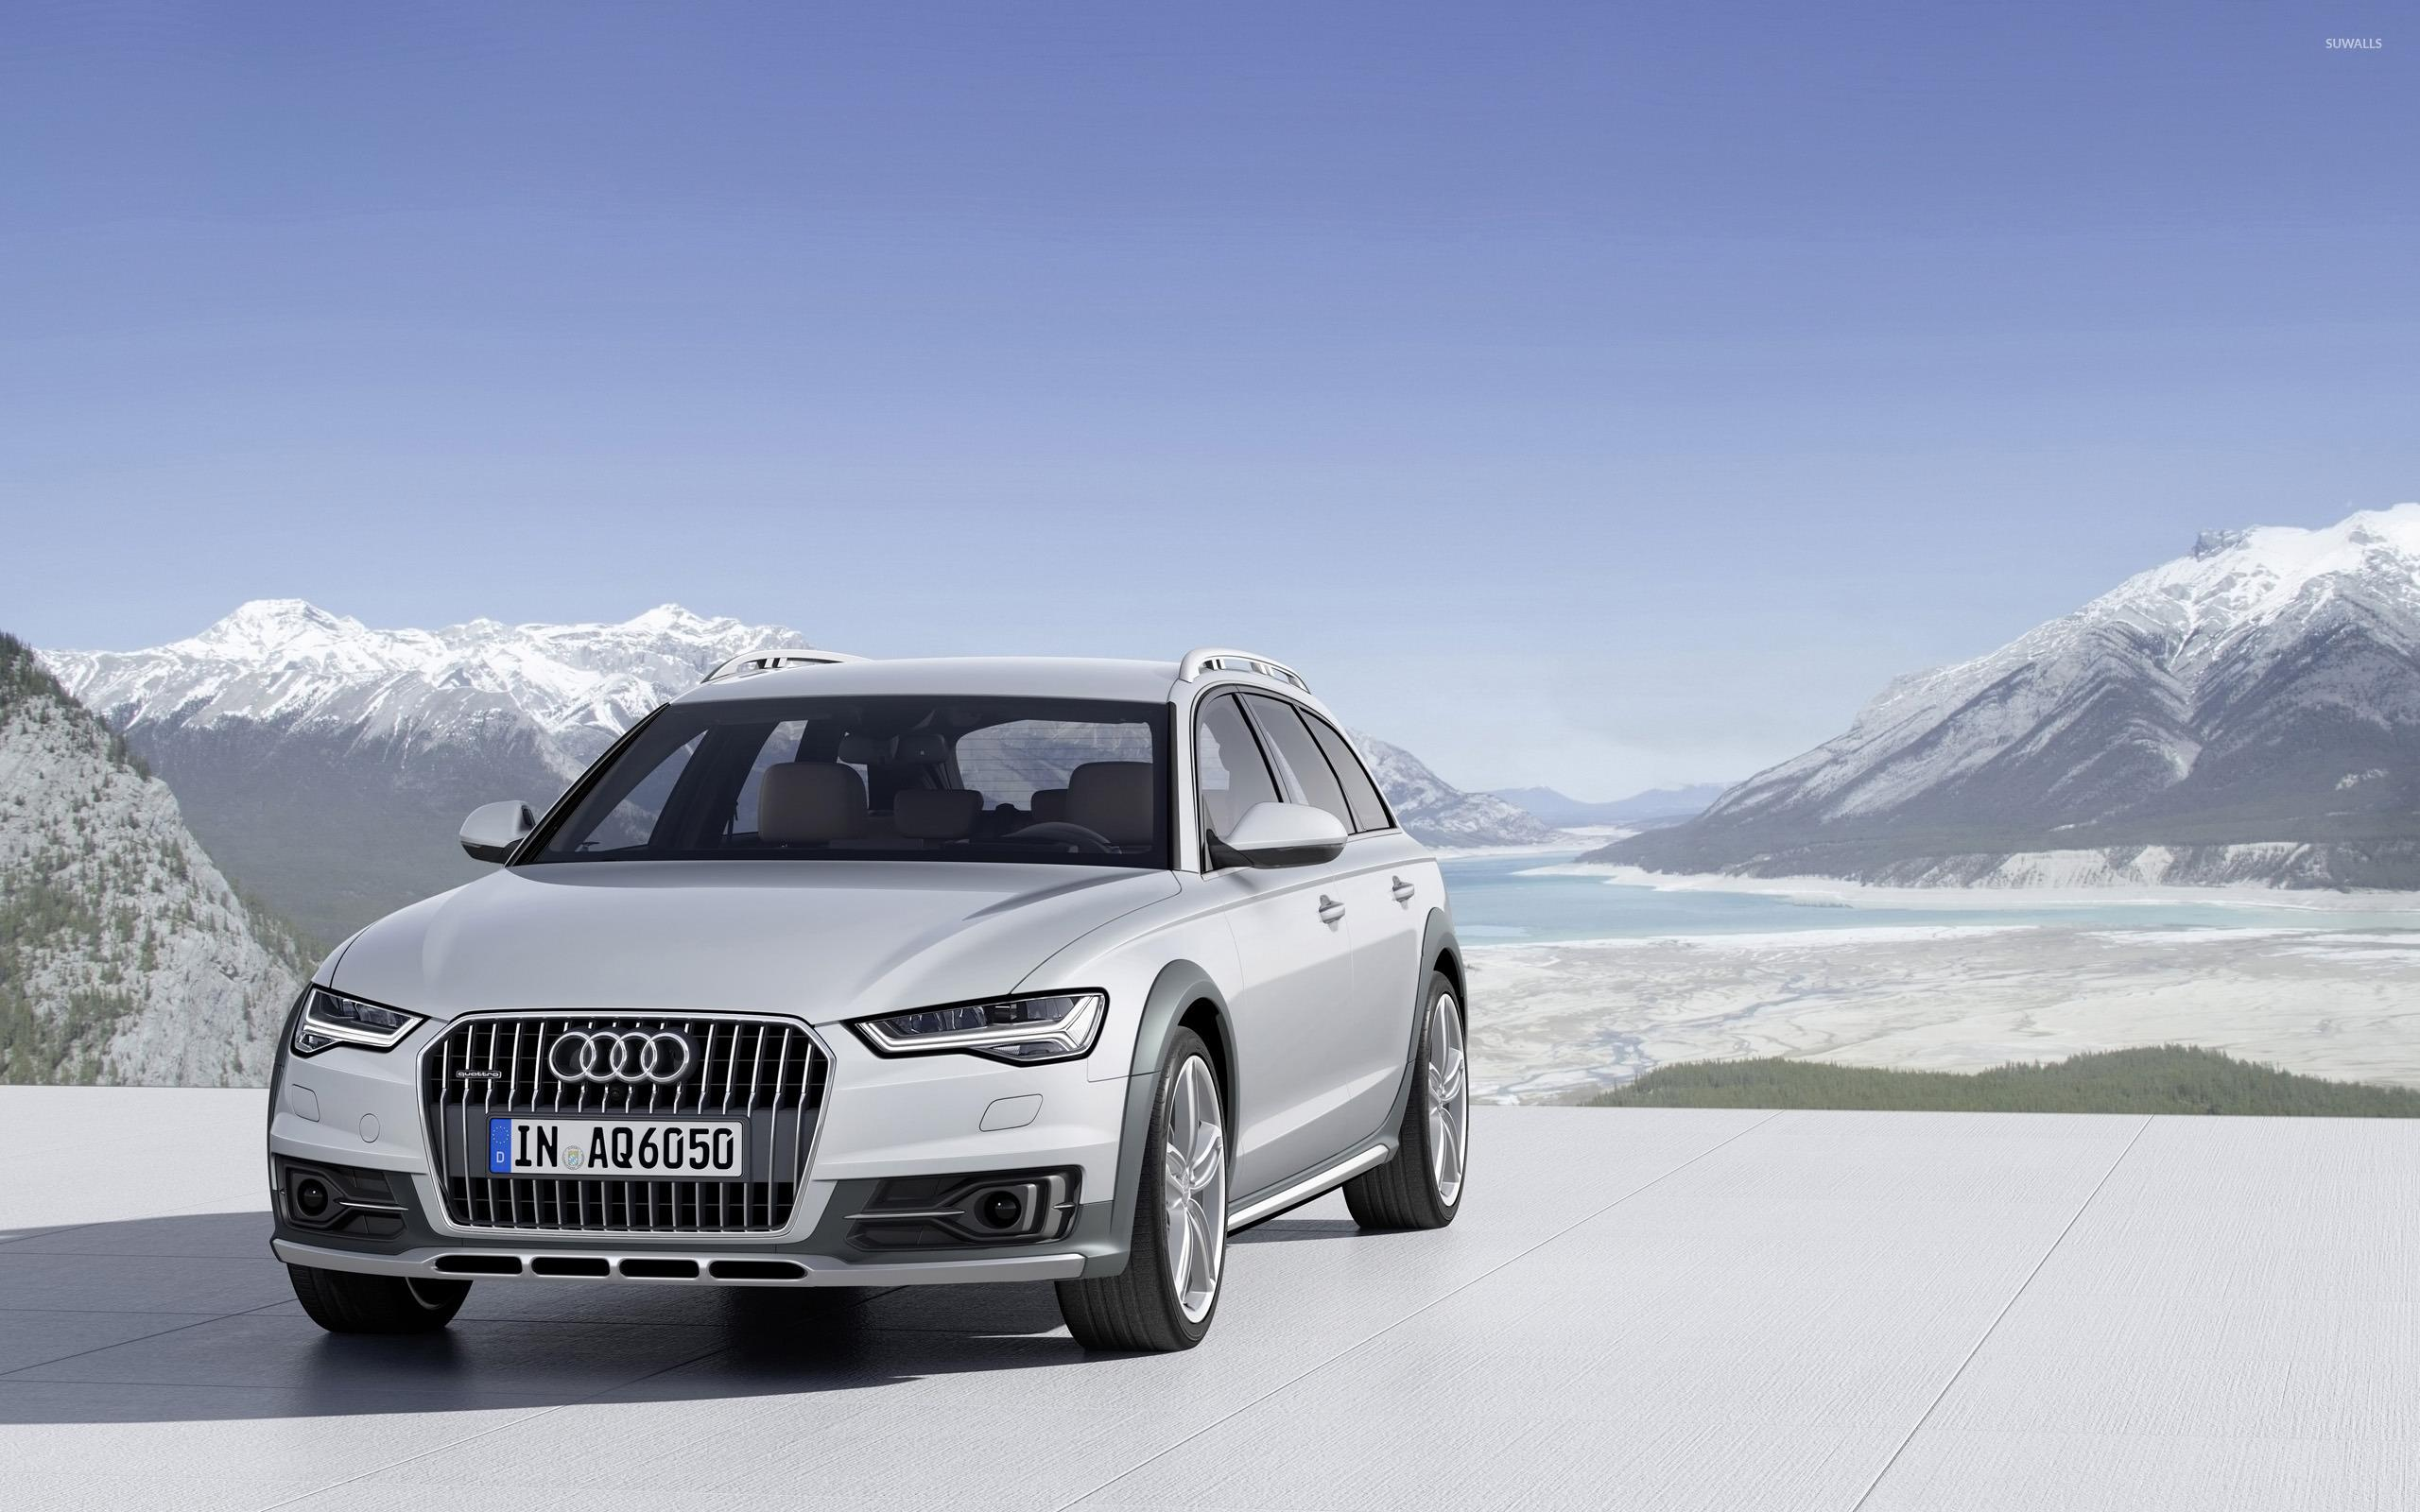 2015 Audi A6 allroad quattro wallpaper - Car wallpapers - #40840